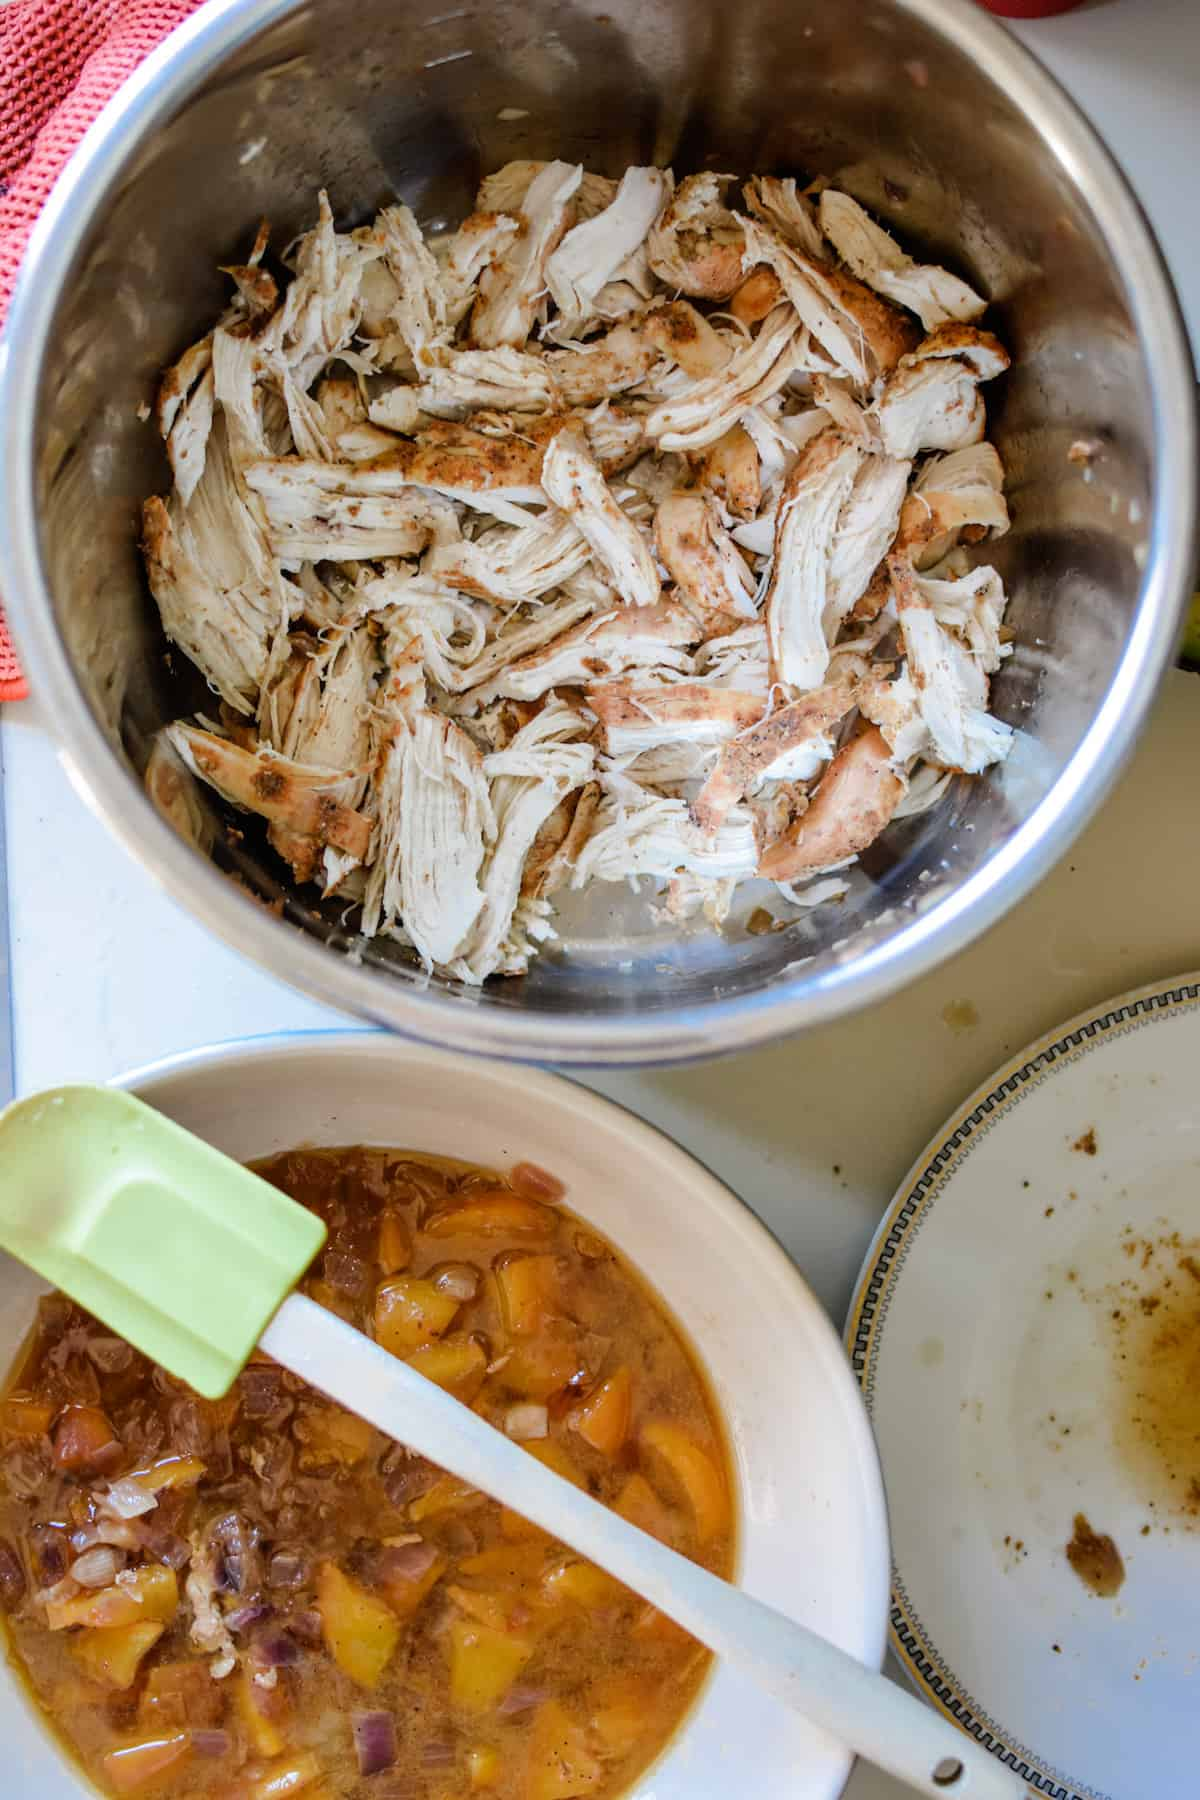 A metal pot with shredded chicken sitting next to a ceramic bowl with cooked peaches and onions in broth and an empty plate on the side.